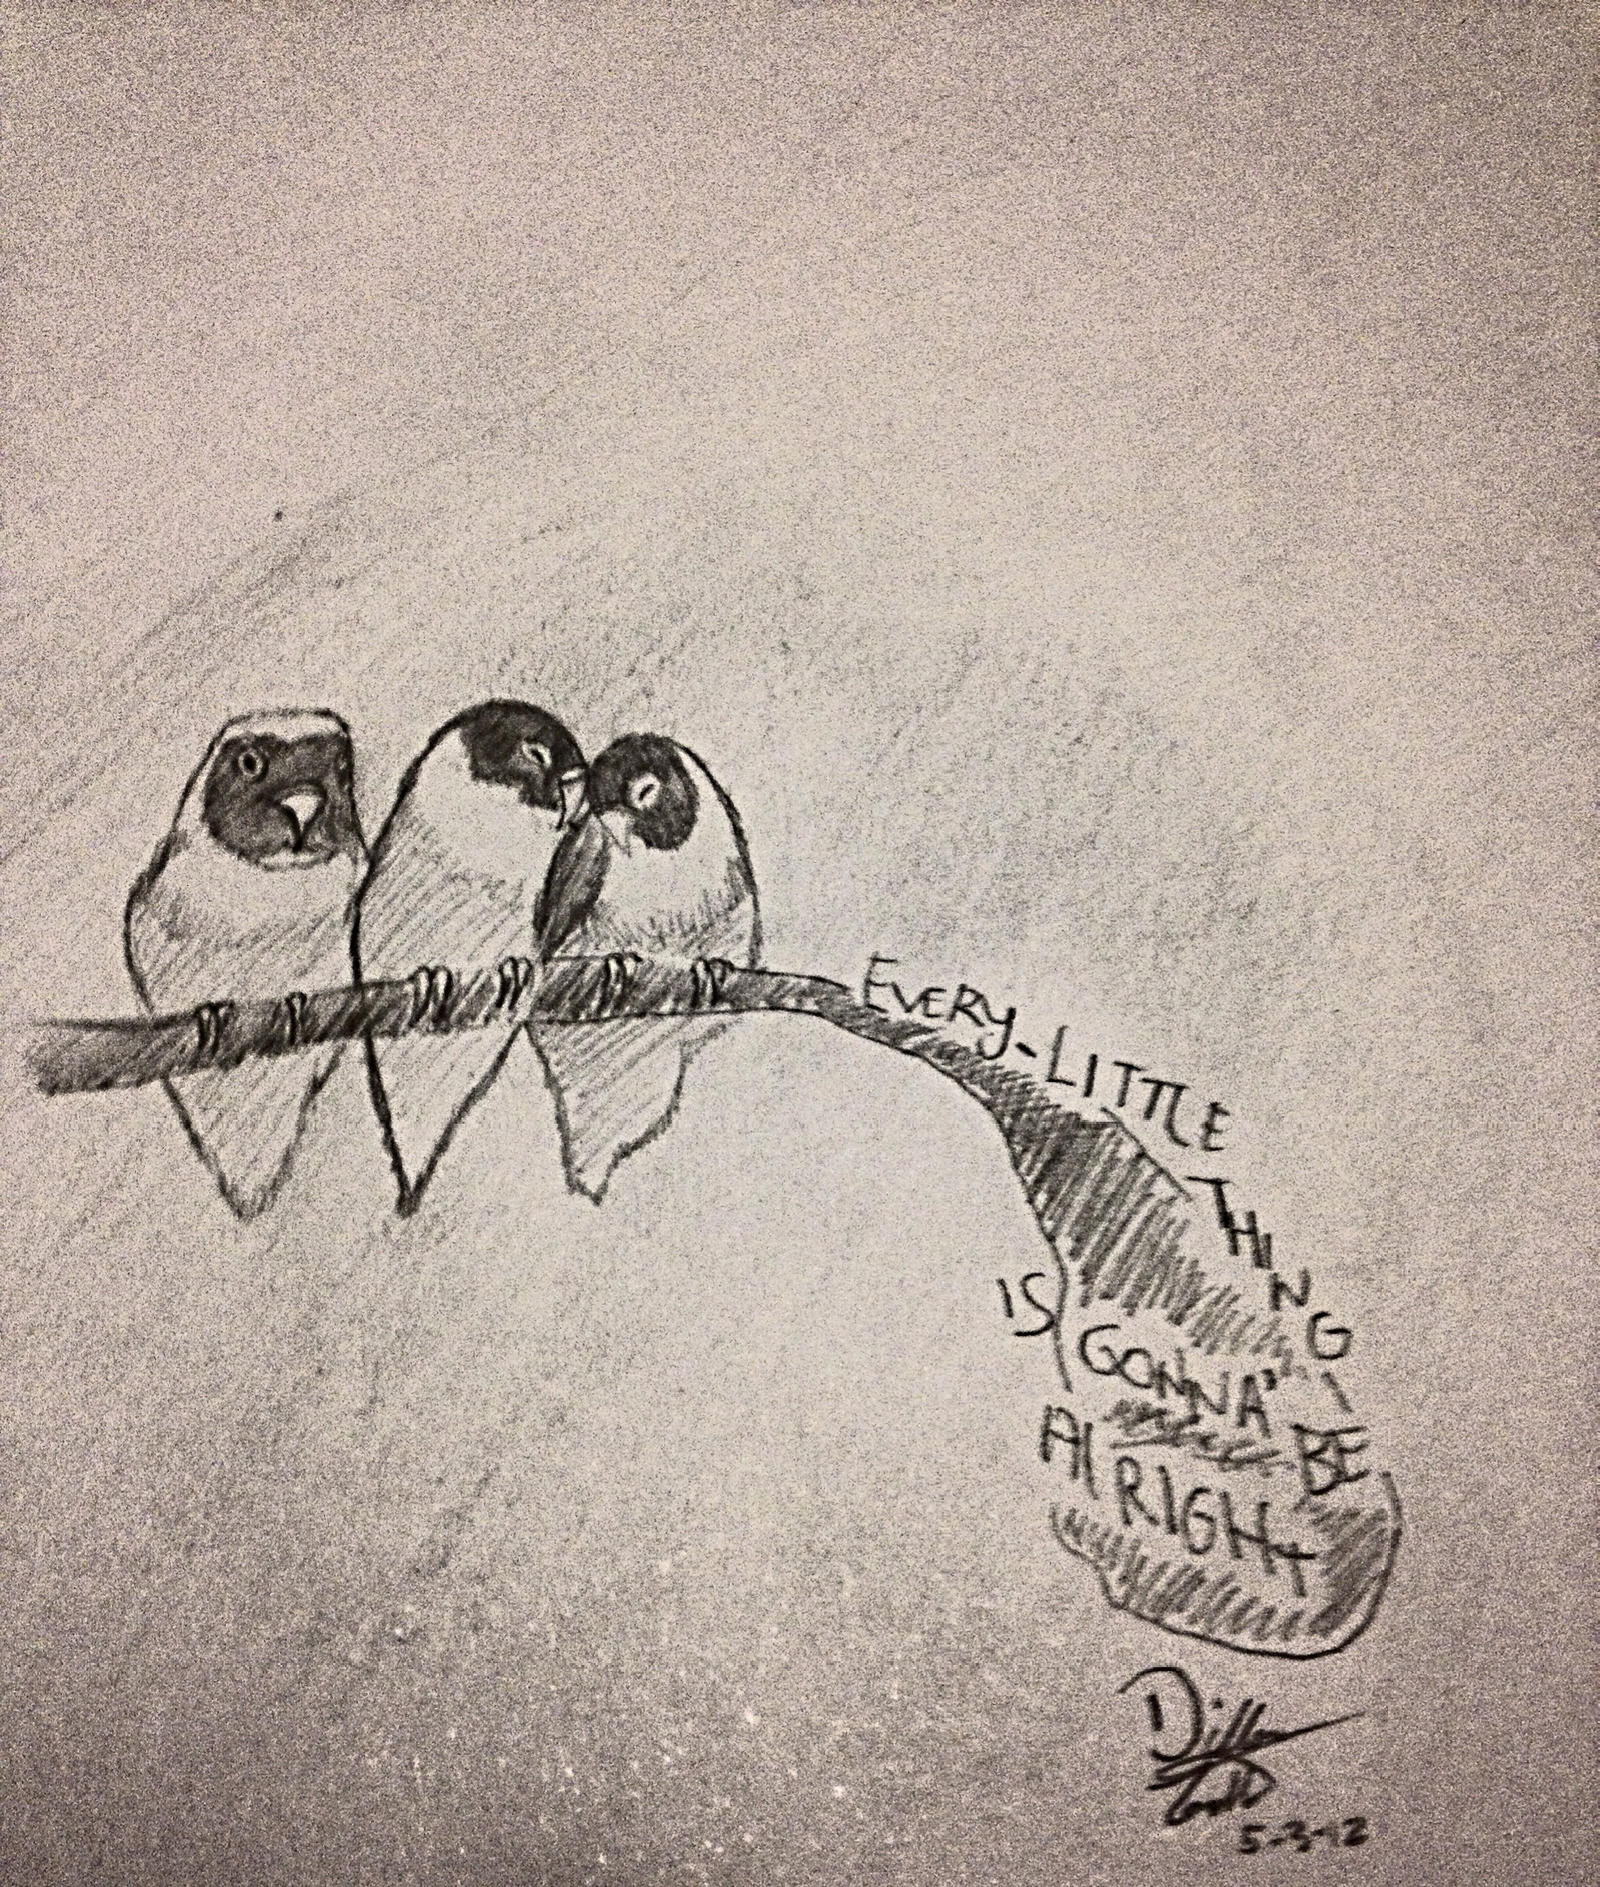 Bob Marley Three Little Birds Drawing Free Images